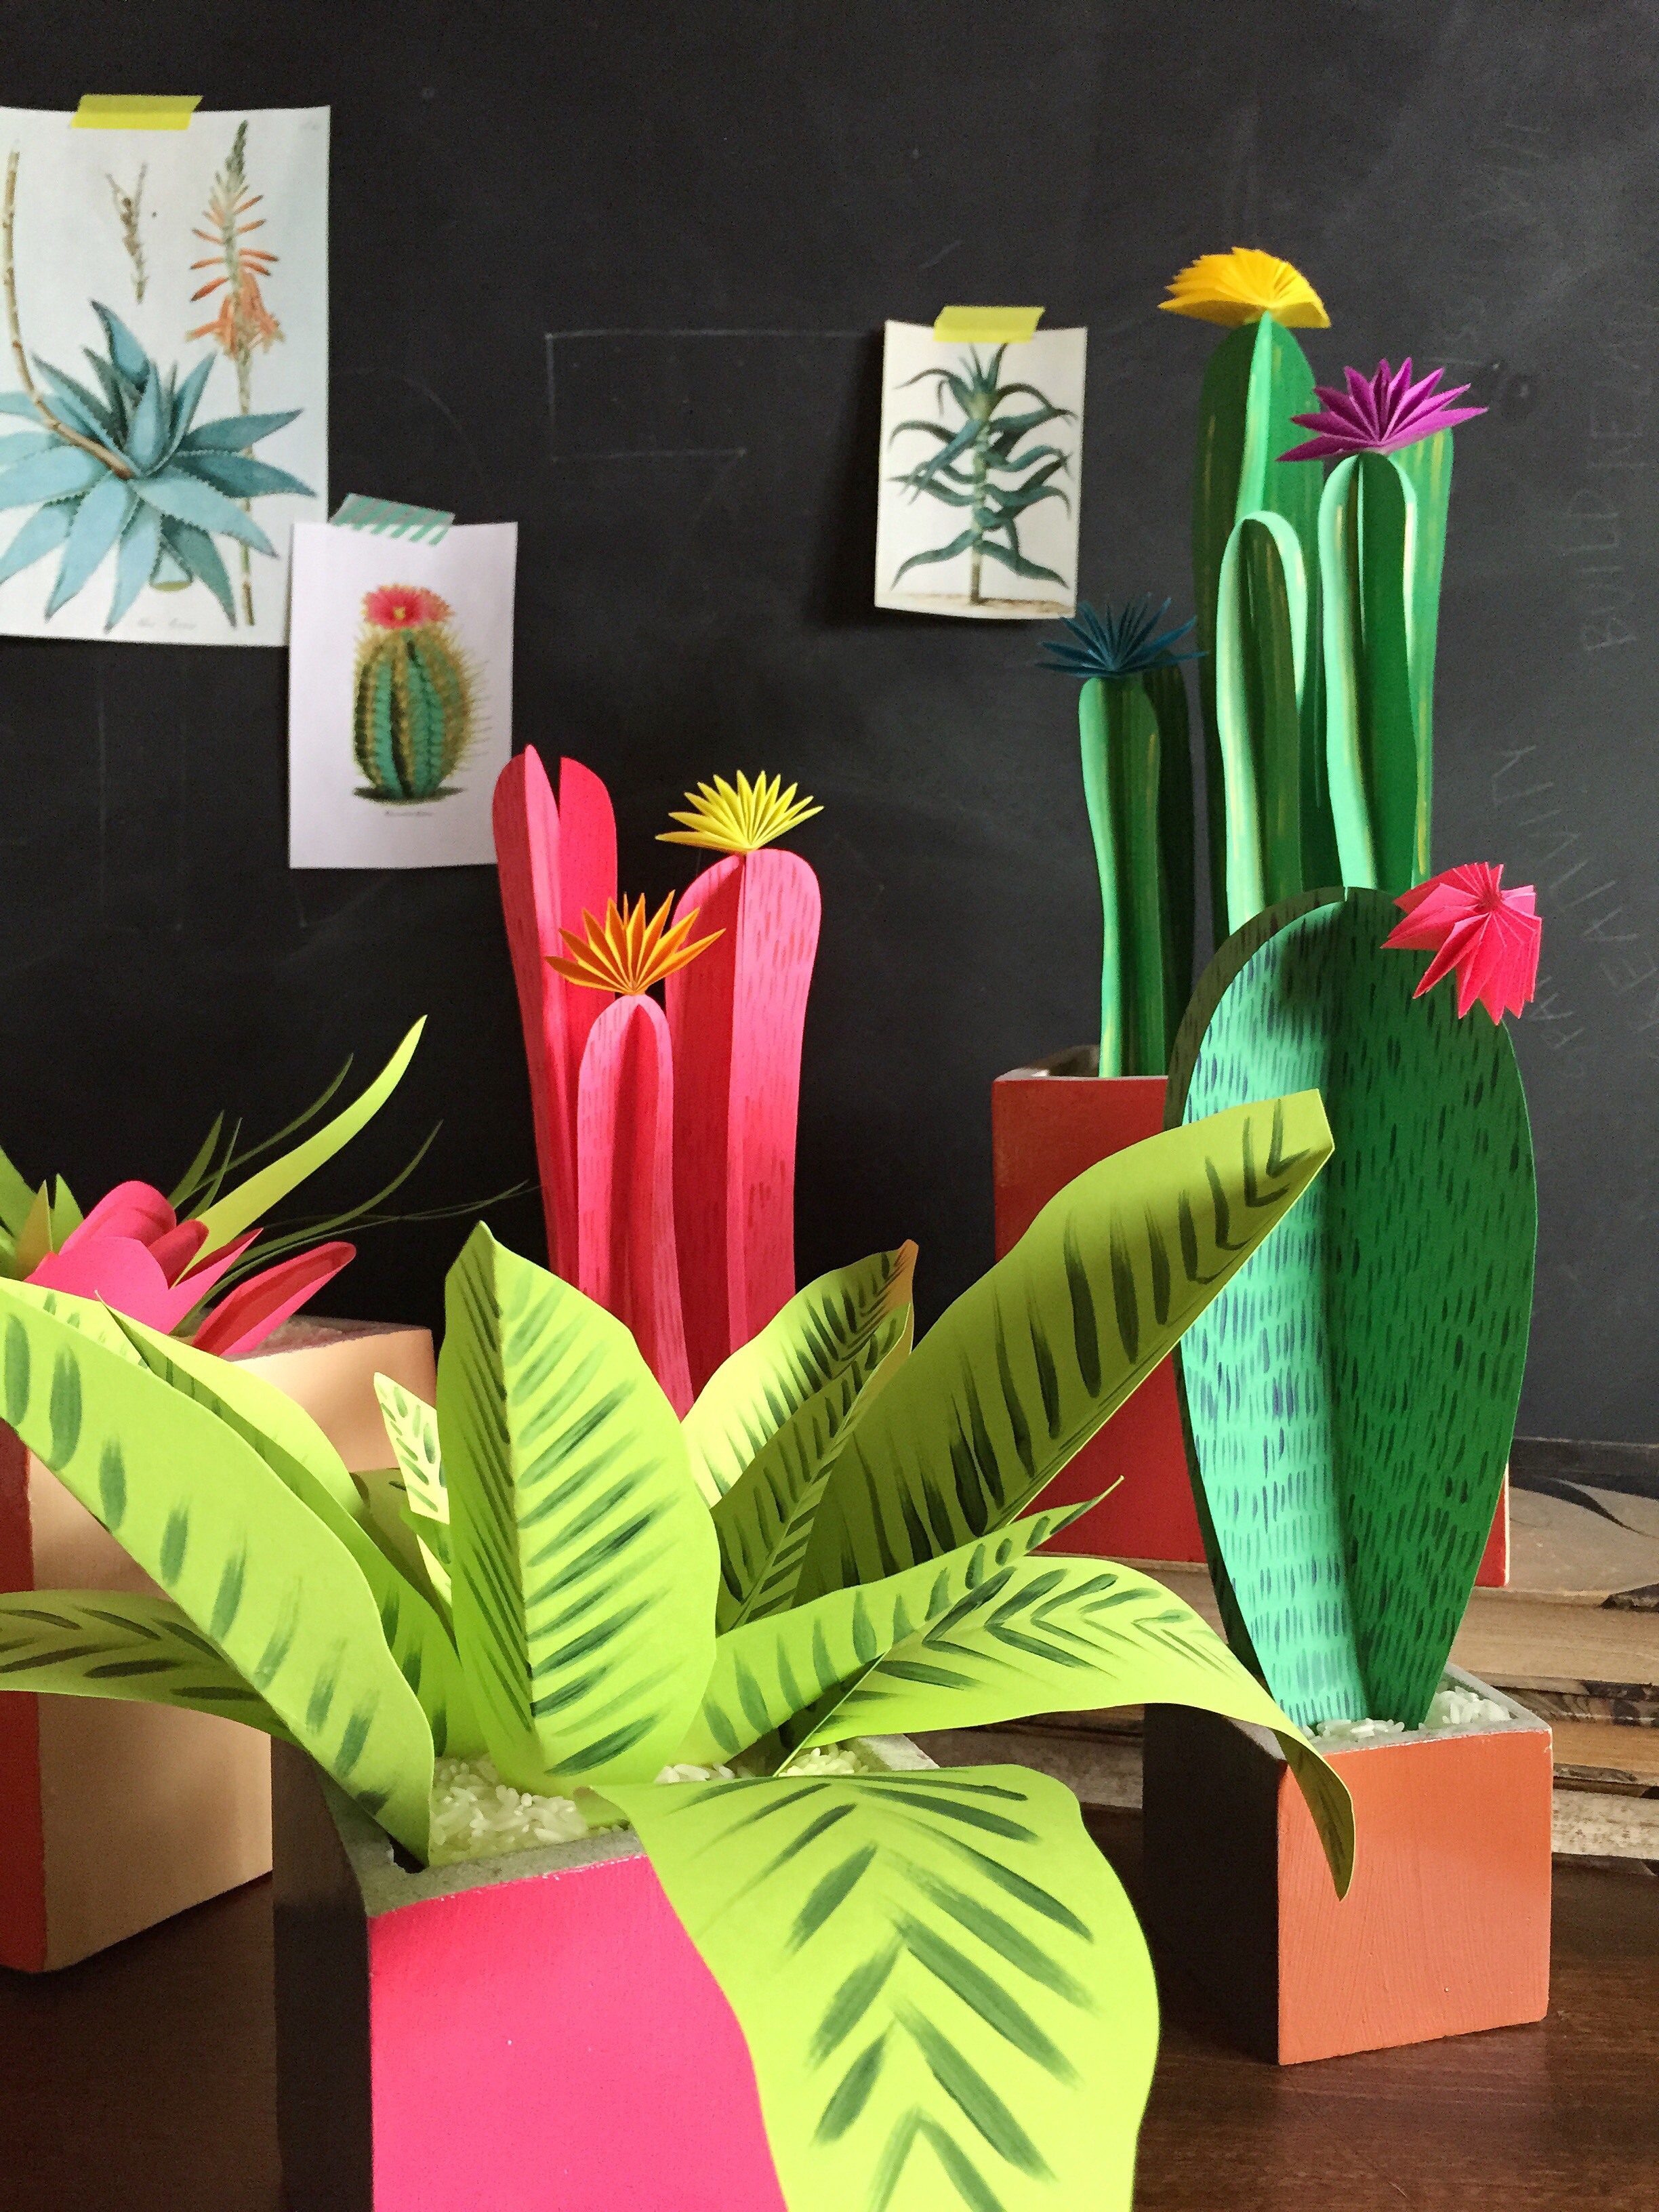 Colorful paper plants in a grey room